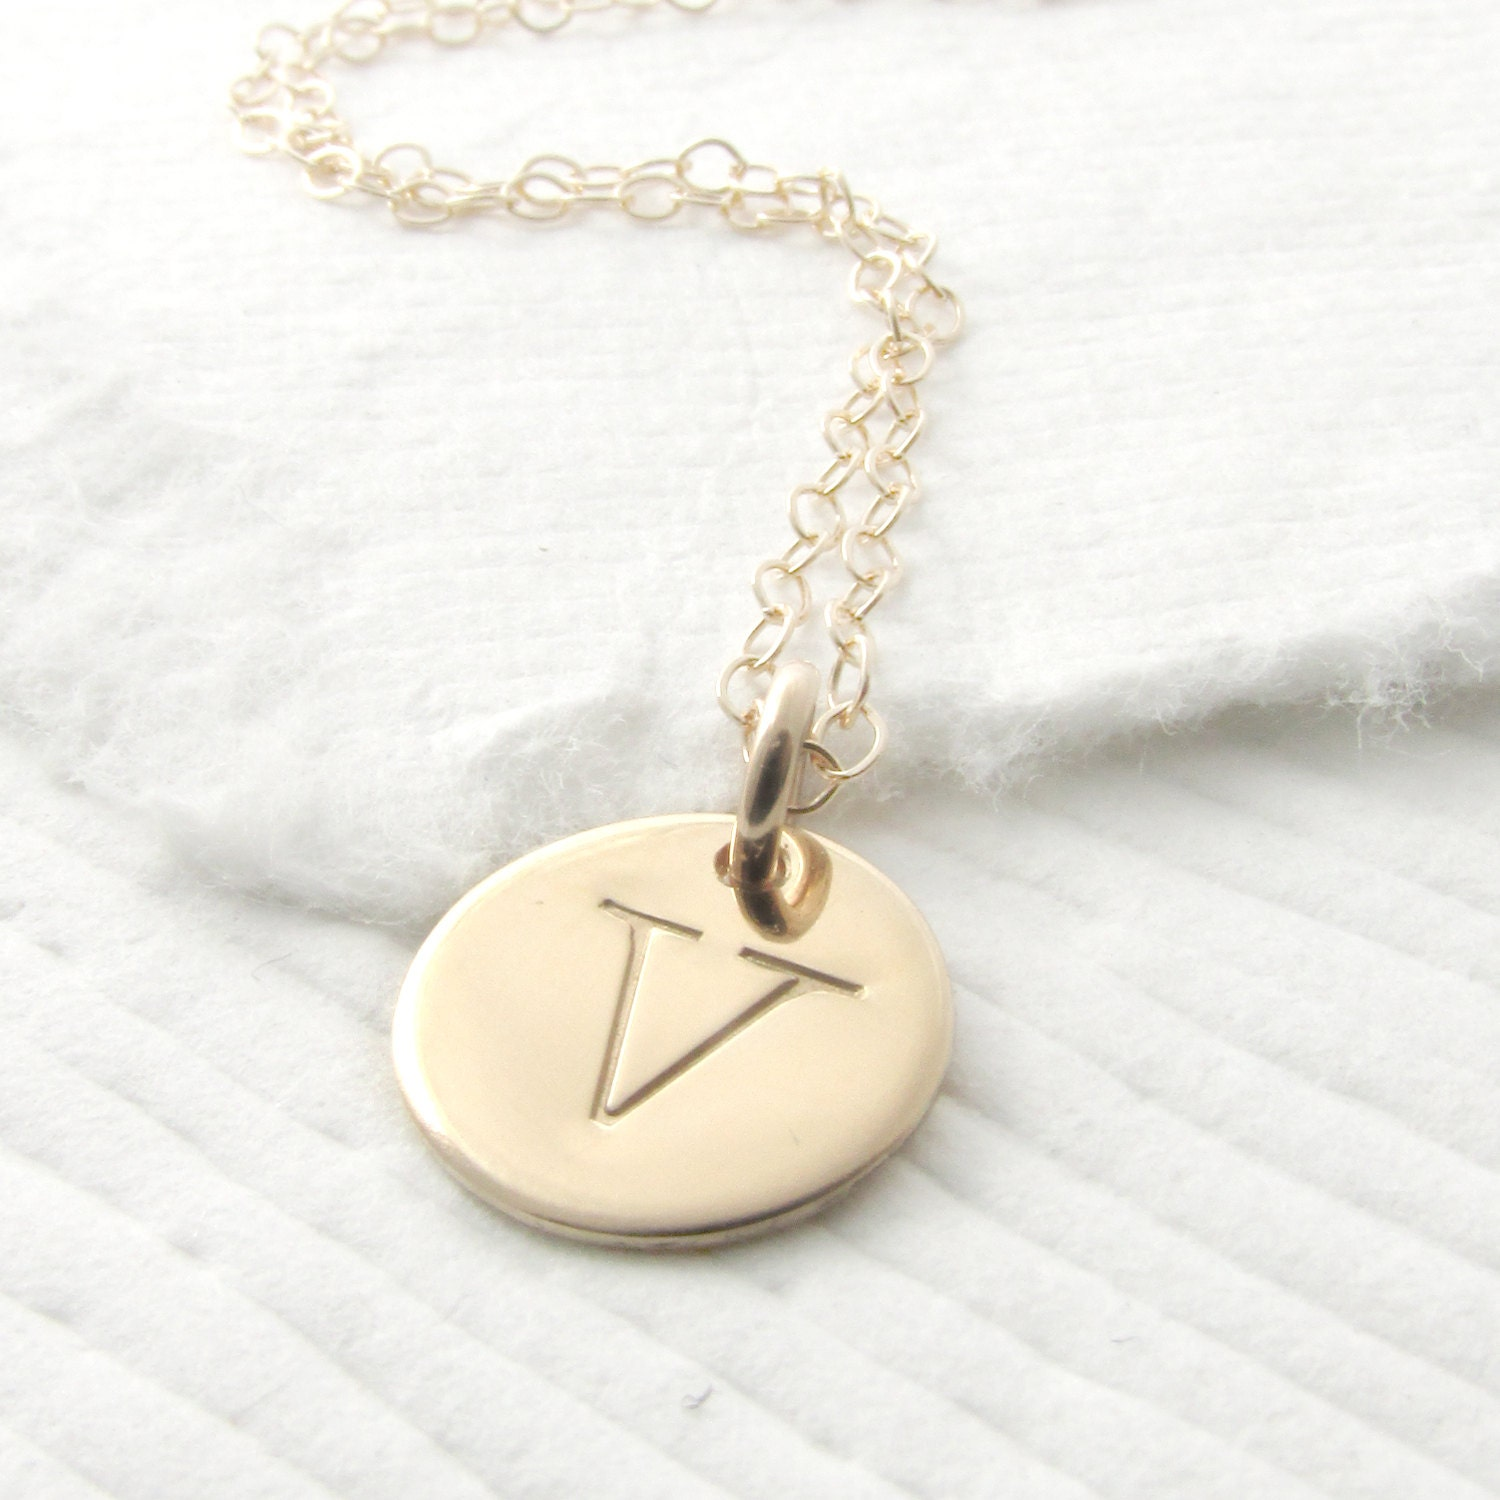 Solid gold initial necklace personalized initial necklace 14k for Custom letter necklace gold